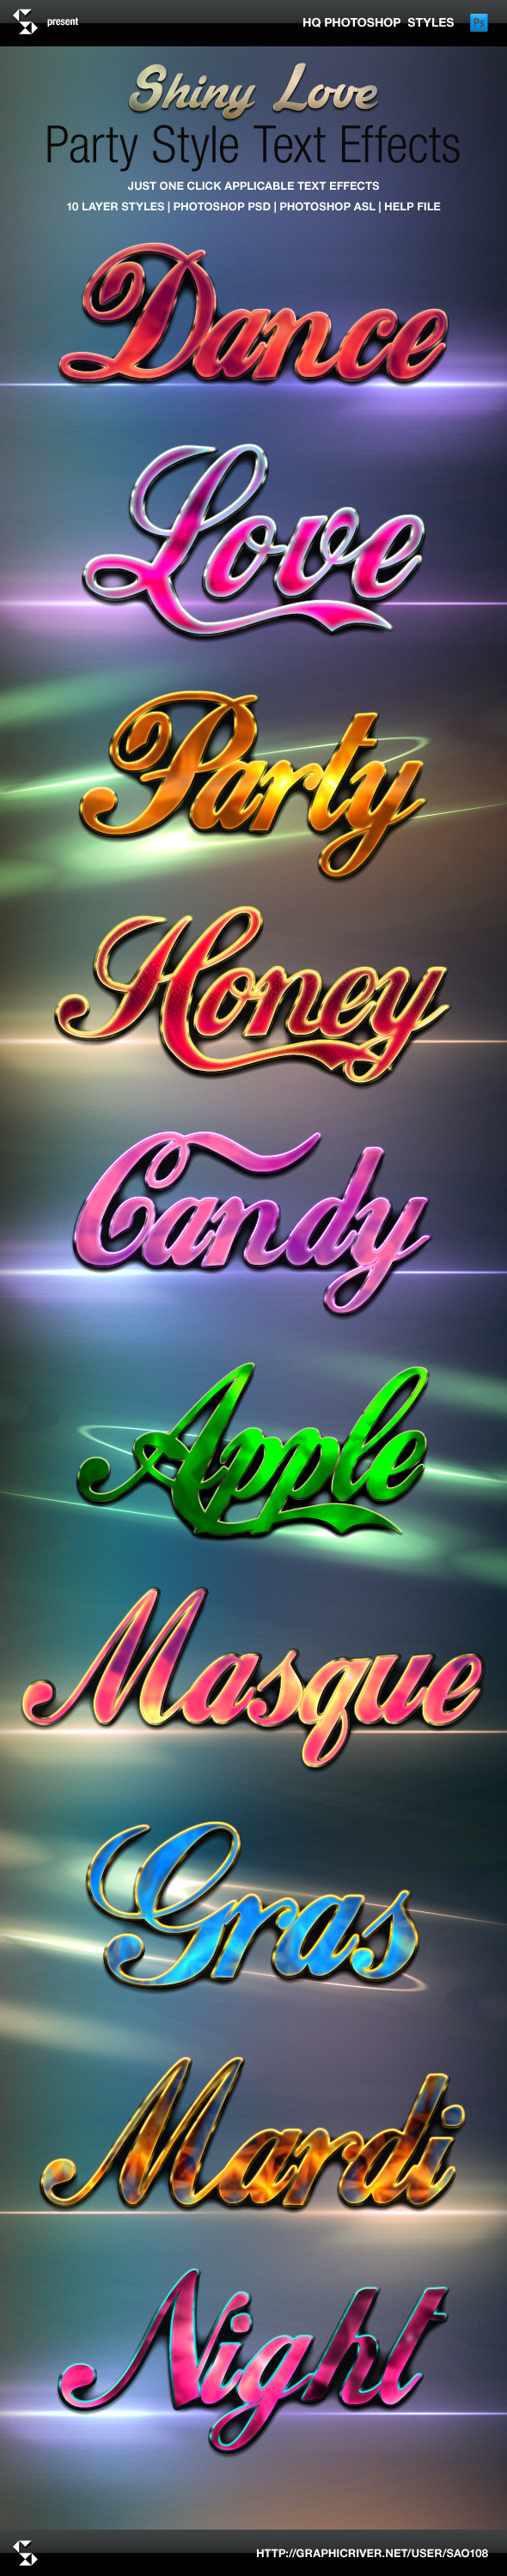 Shiny Love Party Style Text Effects - Text Effects Styles